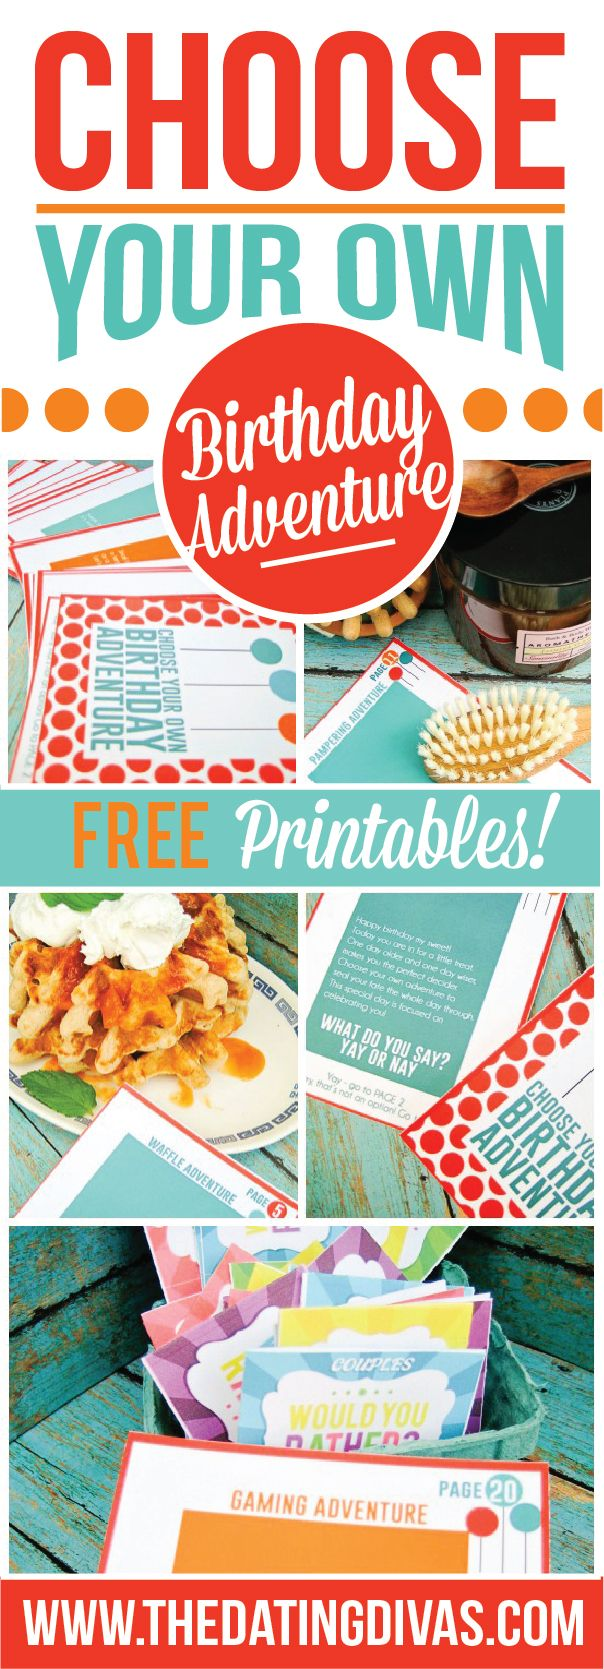 Choose Your Own Birthday Adventure Date! Free Printables!